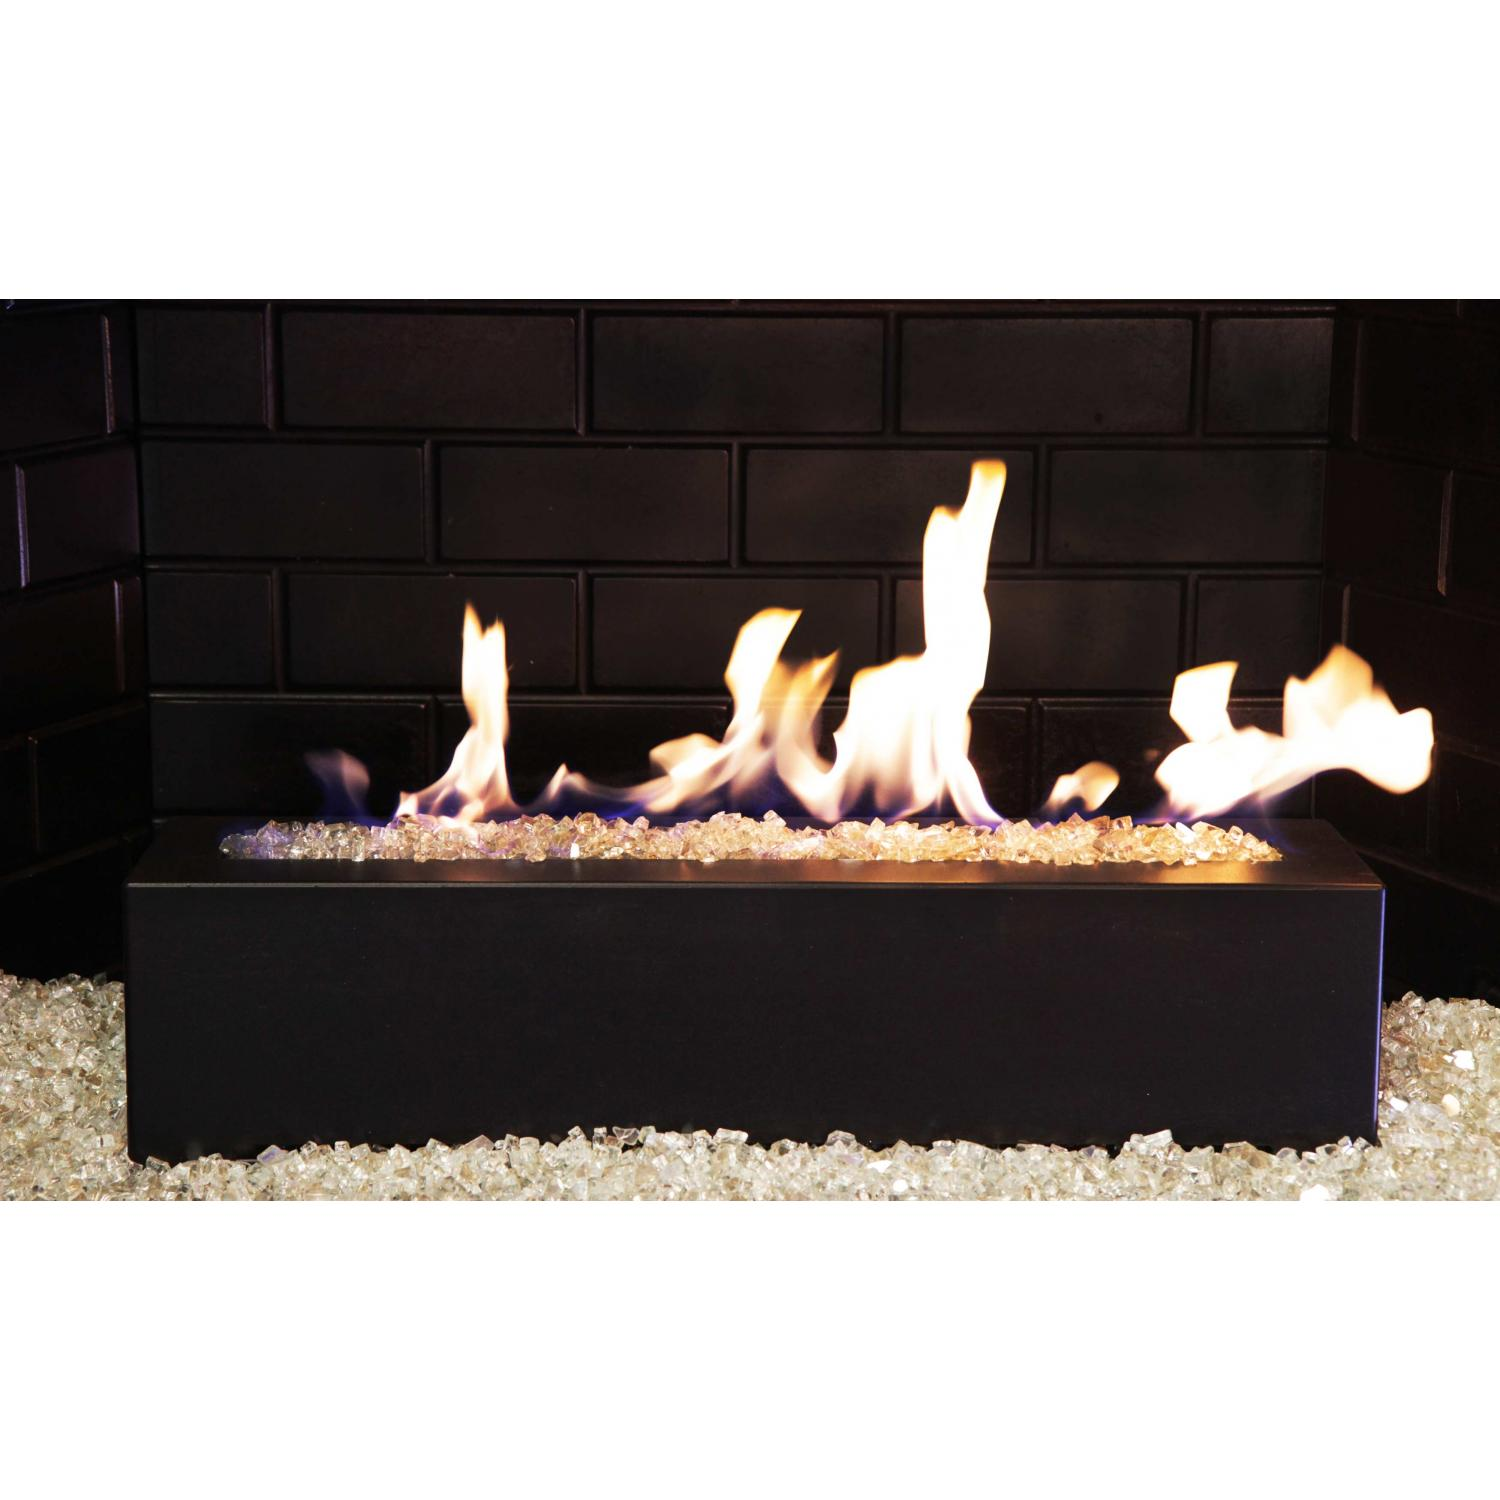 Picture of Golden Blount 24-Inch Alpine Linear Burner With Decorative Black Front Face And Crystal Reflective Fire Glass